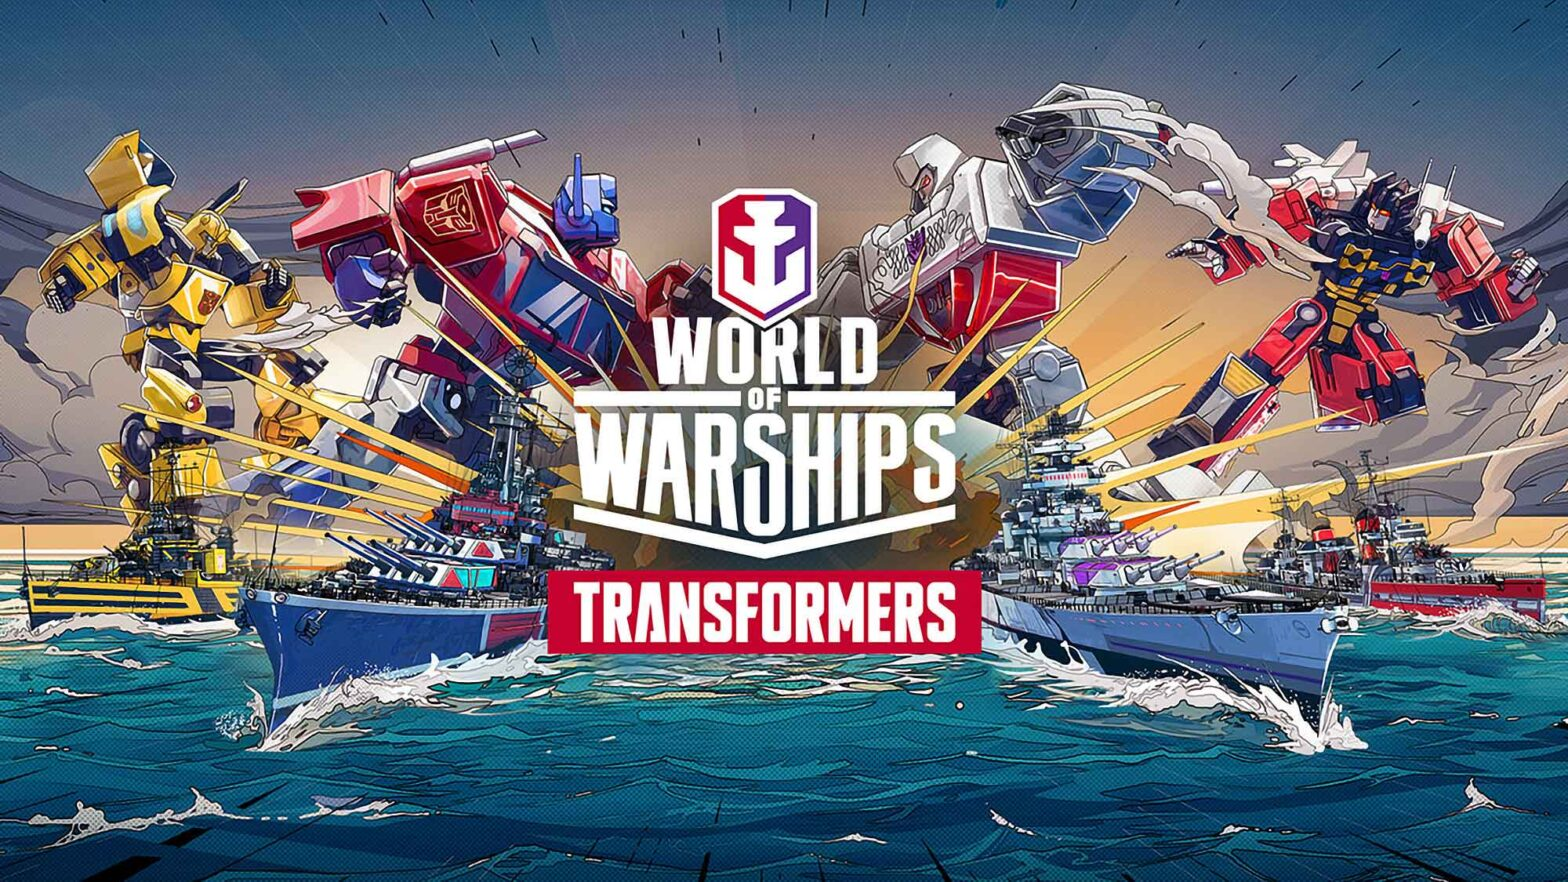 Transformers Joins World of Warships Today